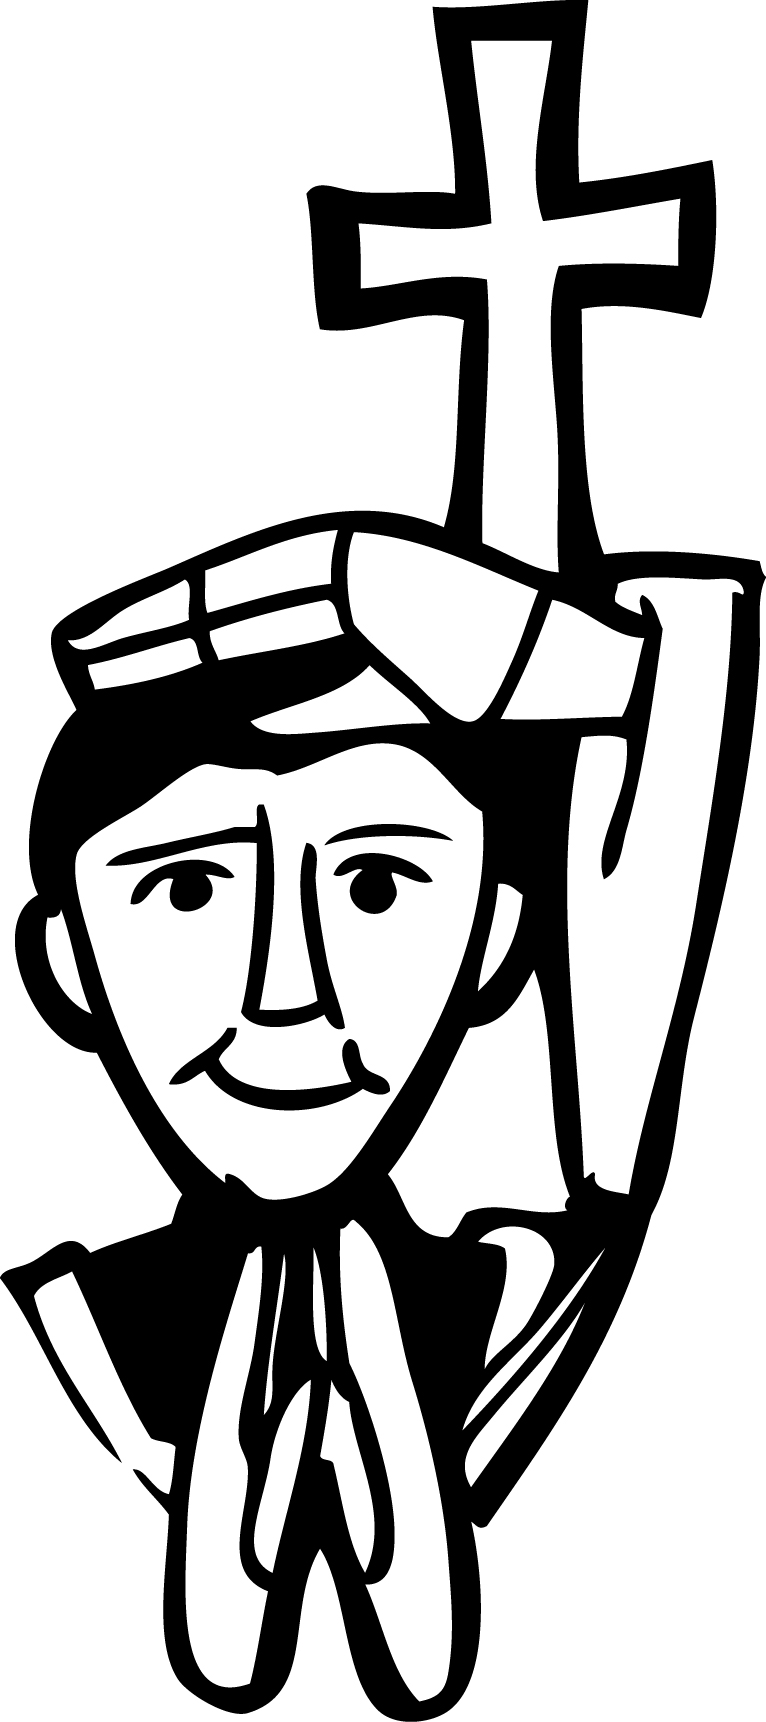 Rabbi clipart blessing. Free priest cliparts download